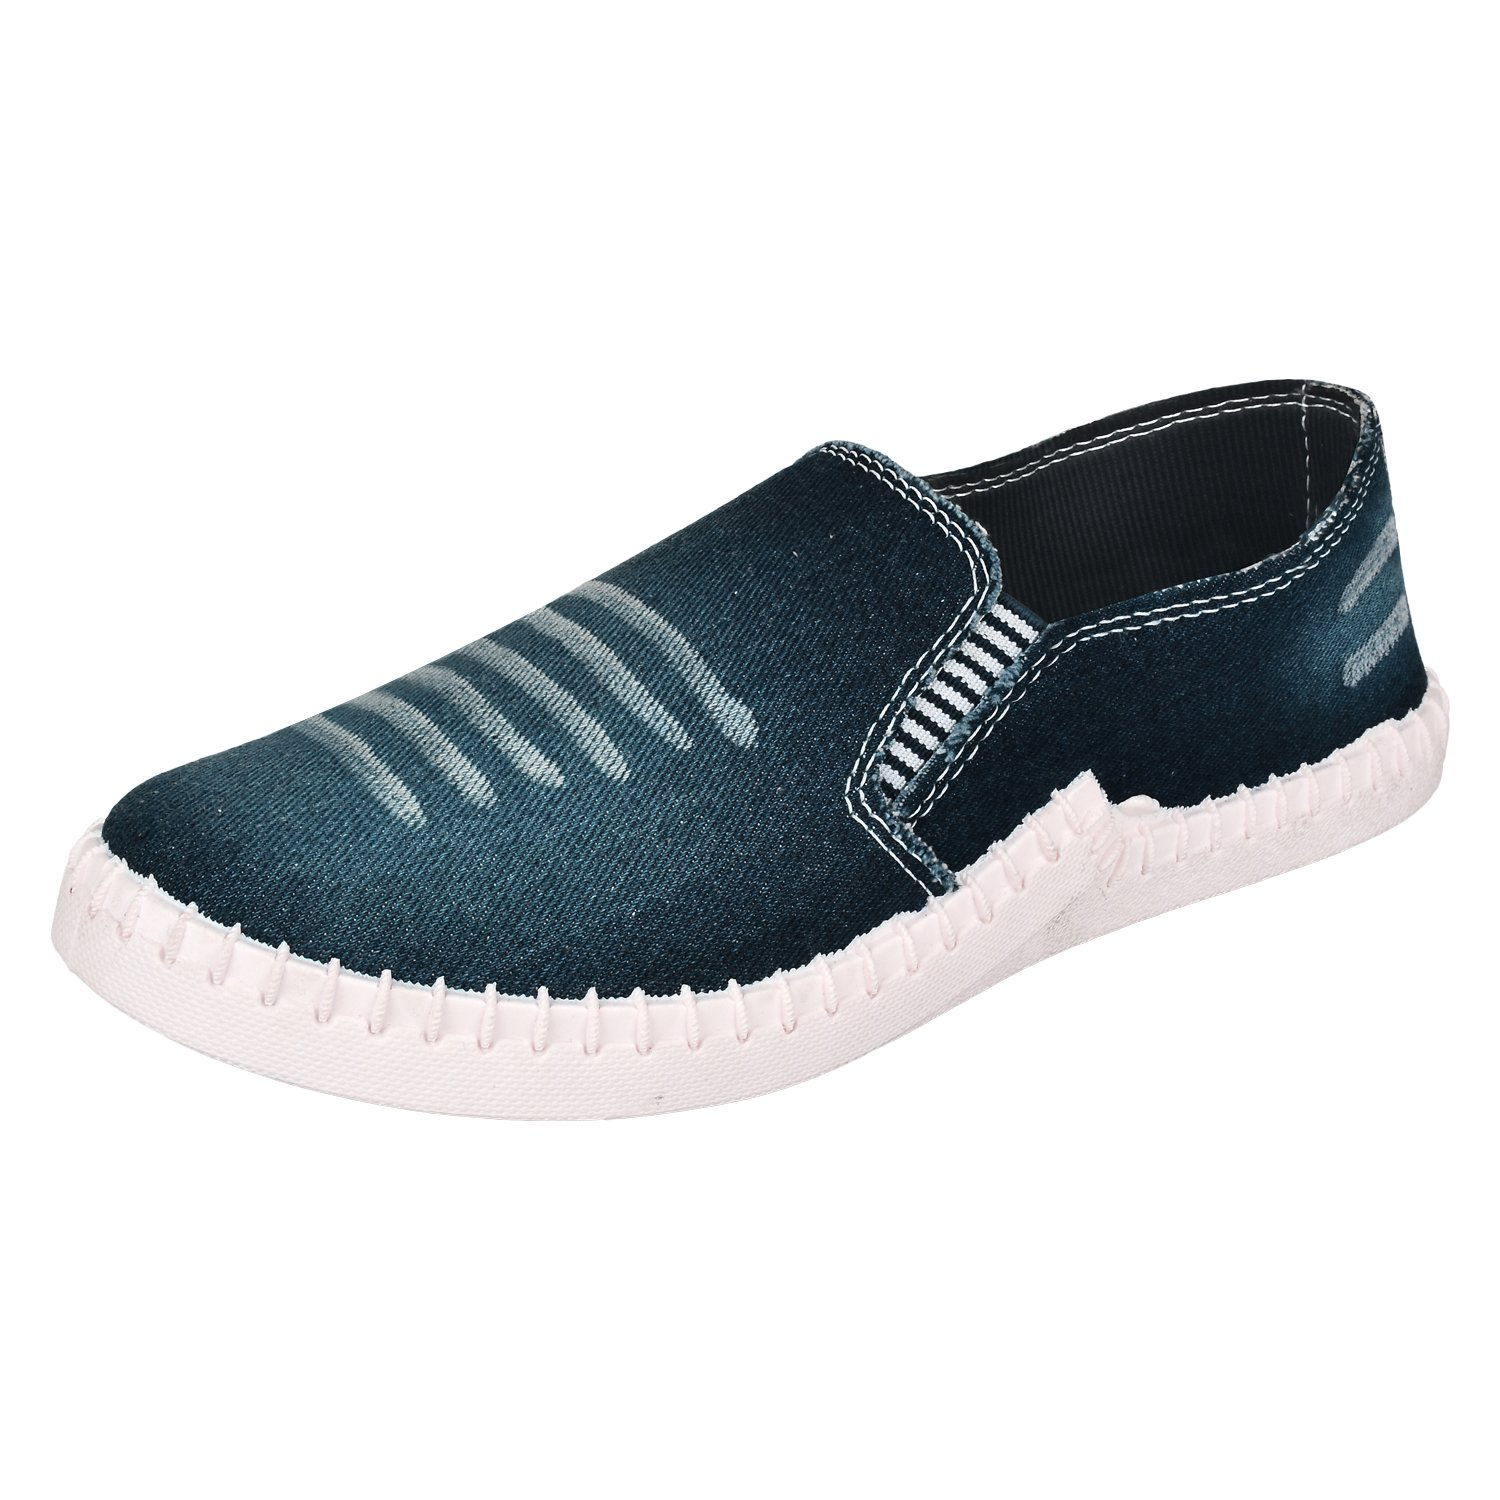 Earton Men Boys Blue 364 Casual Shoes Loafers & Moccasins Buy